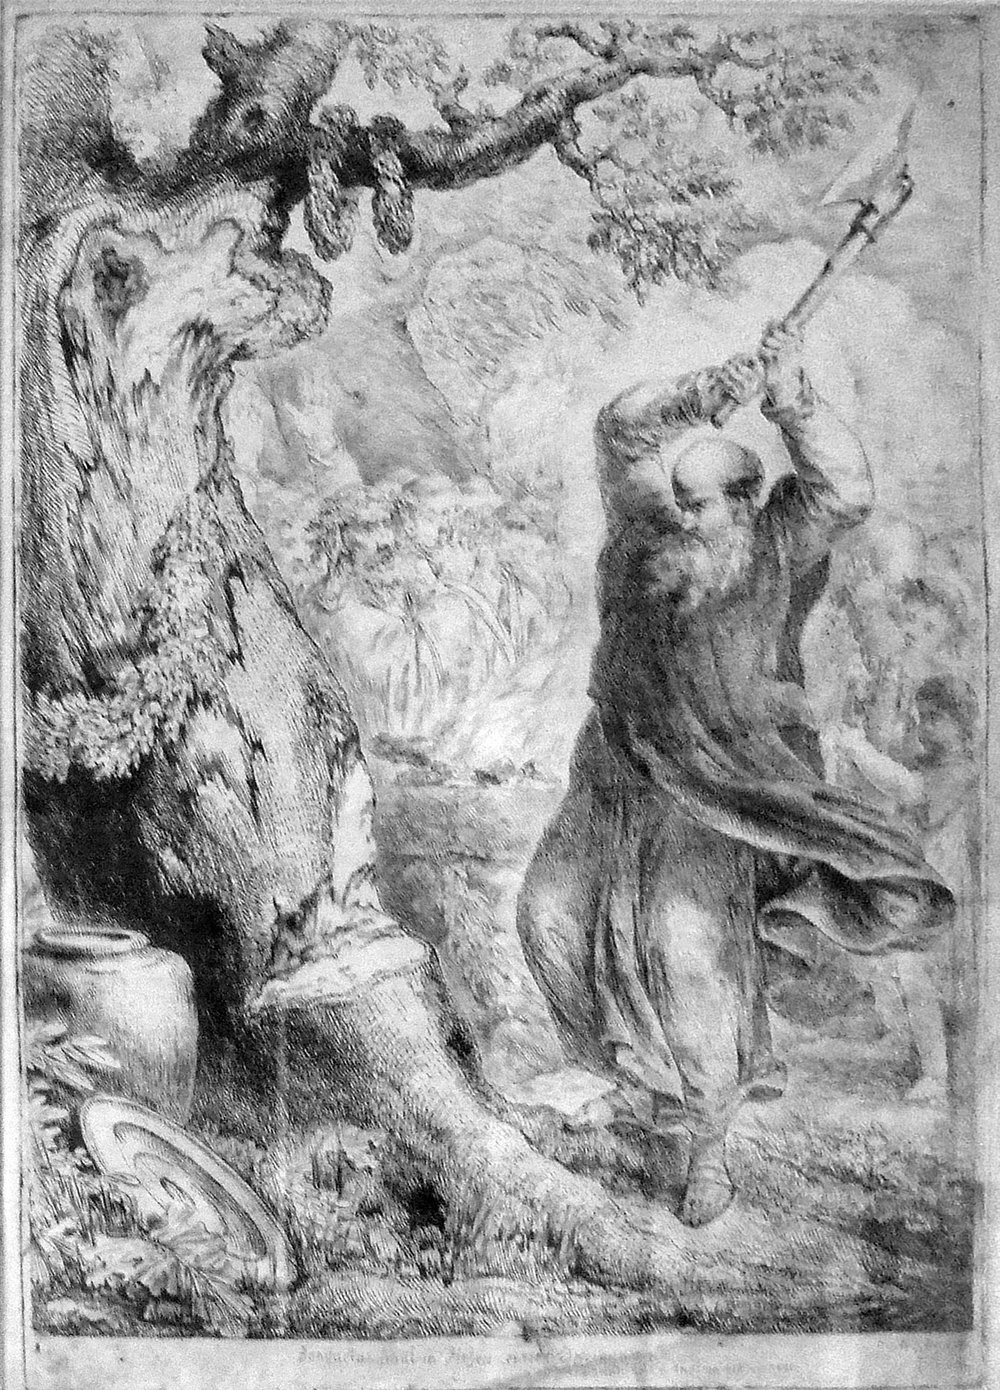 Saint Boniface felling Donar's Oak  By Bernhard Rode - Self-photographed, Public Domain, https://commons.wikimedia.org/w/index.php?curid=5780989